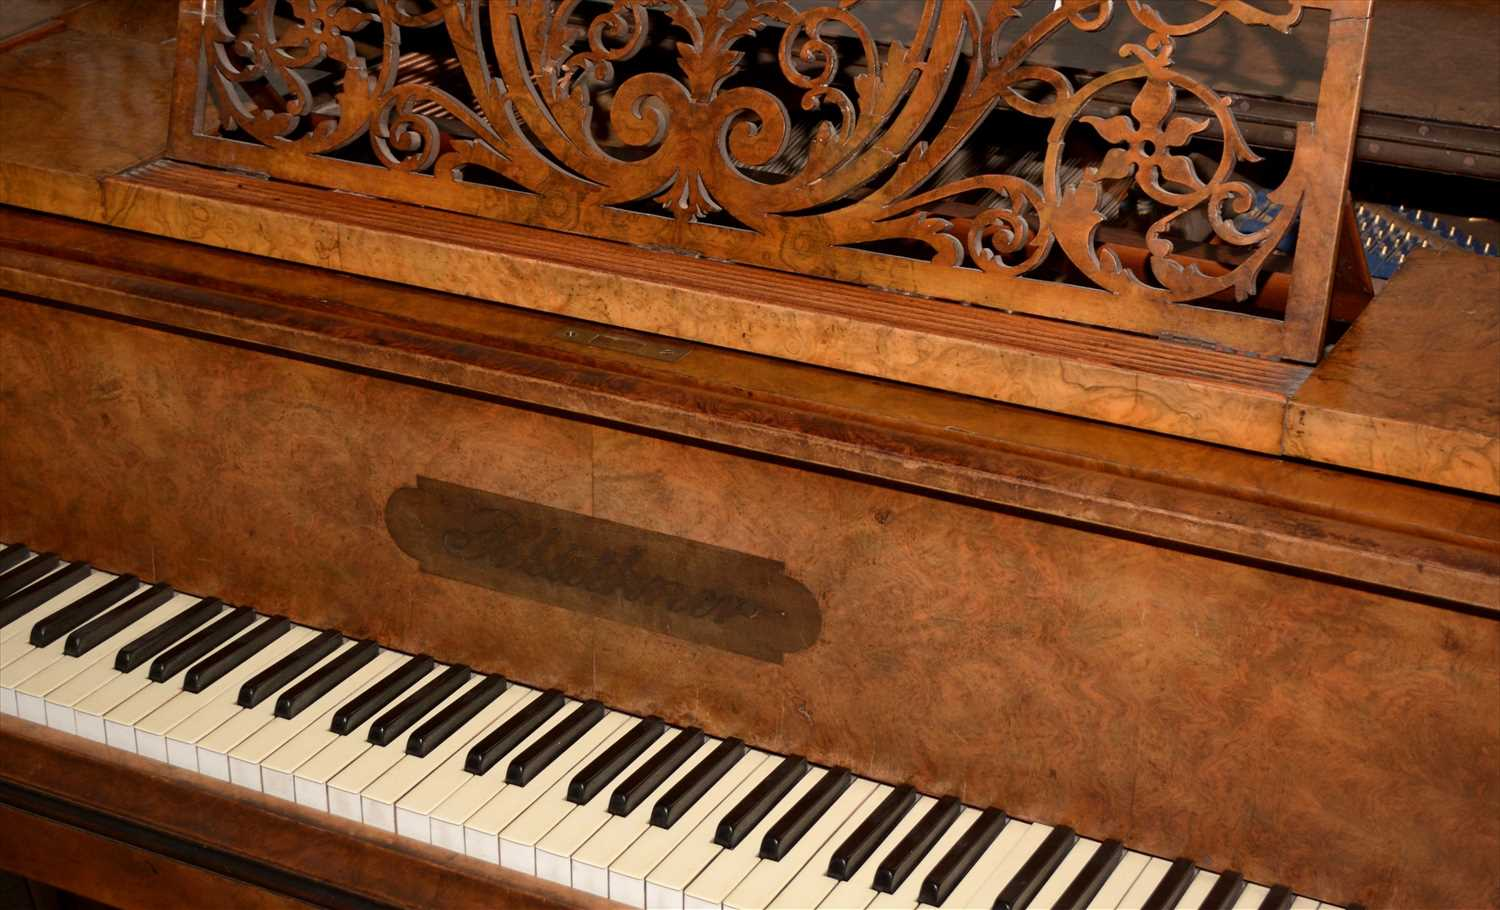 1000 - Bluthner: a Victorian walnut baby grand piano.